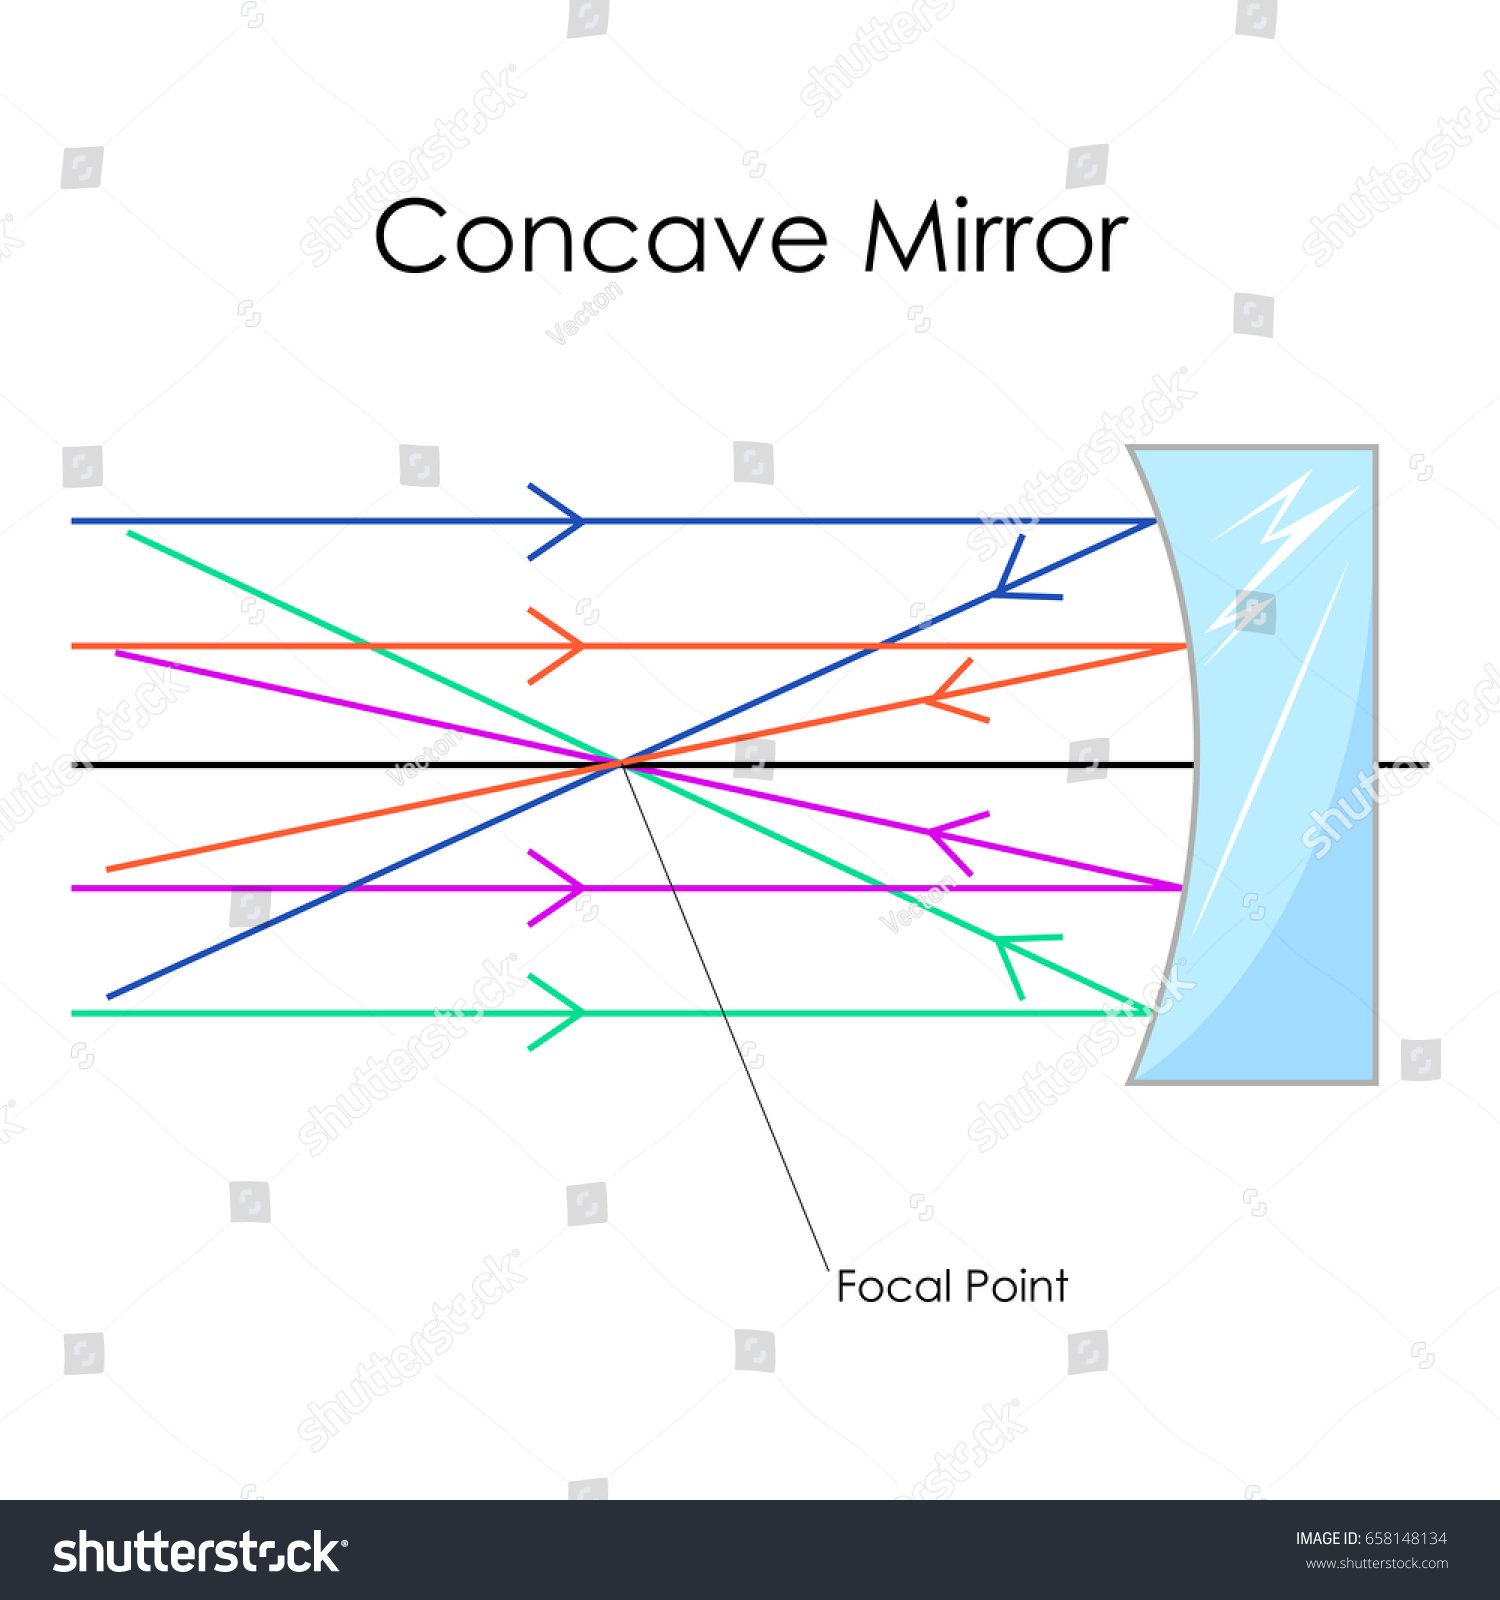 Education Chart Physics Concave Mirror Diagram Stock